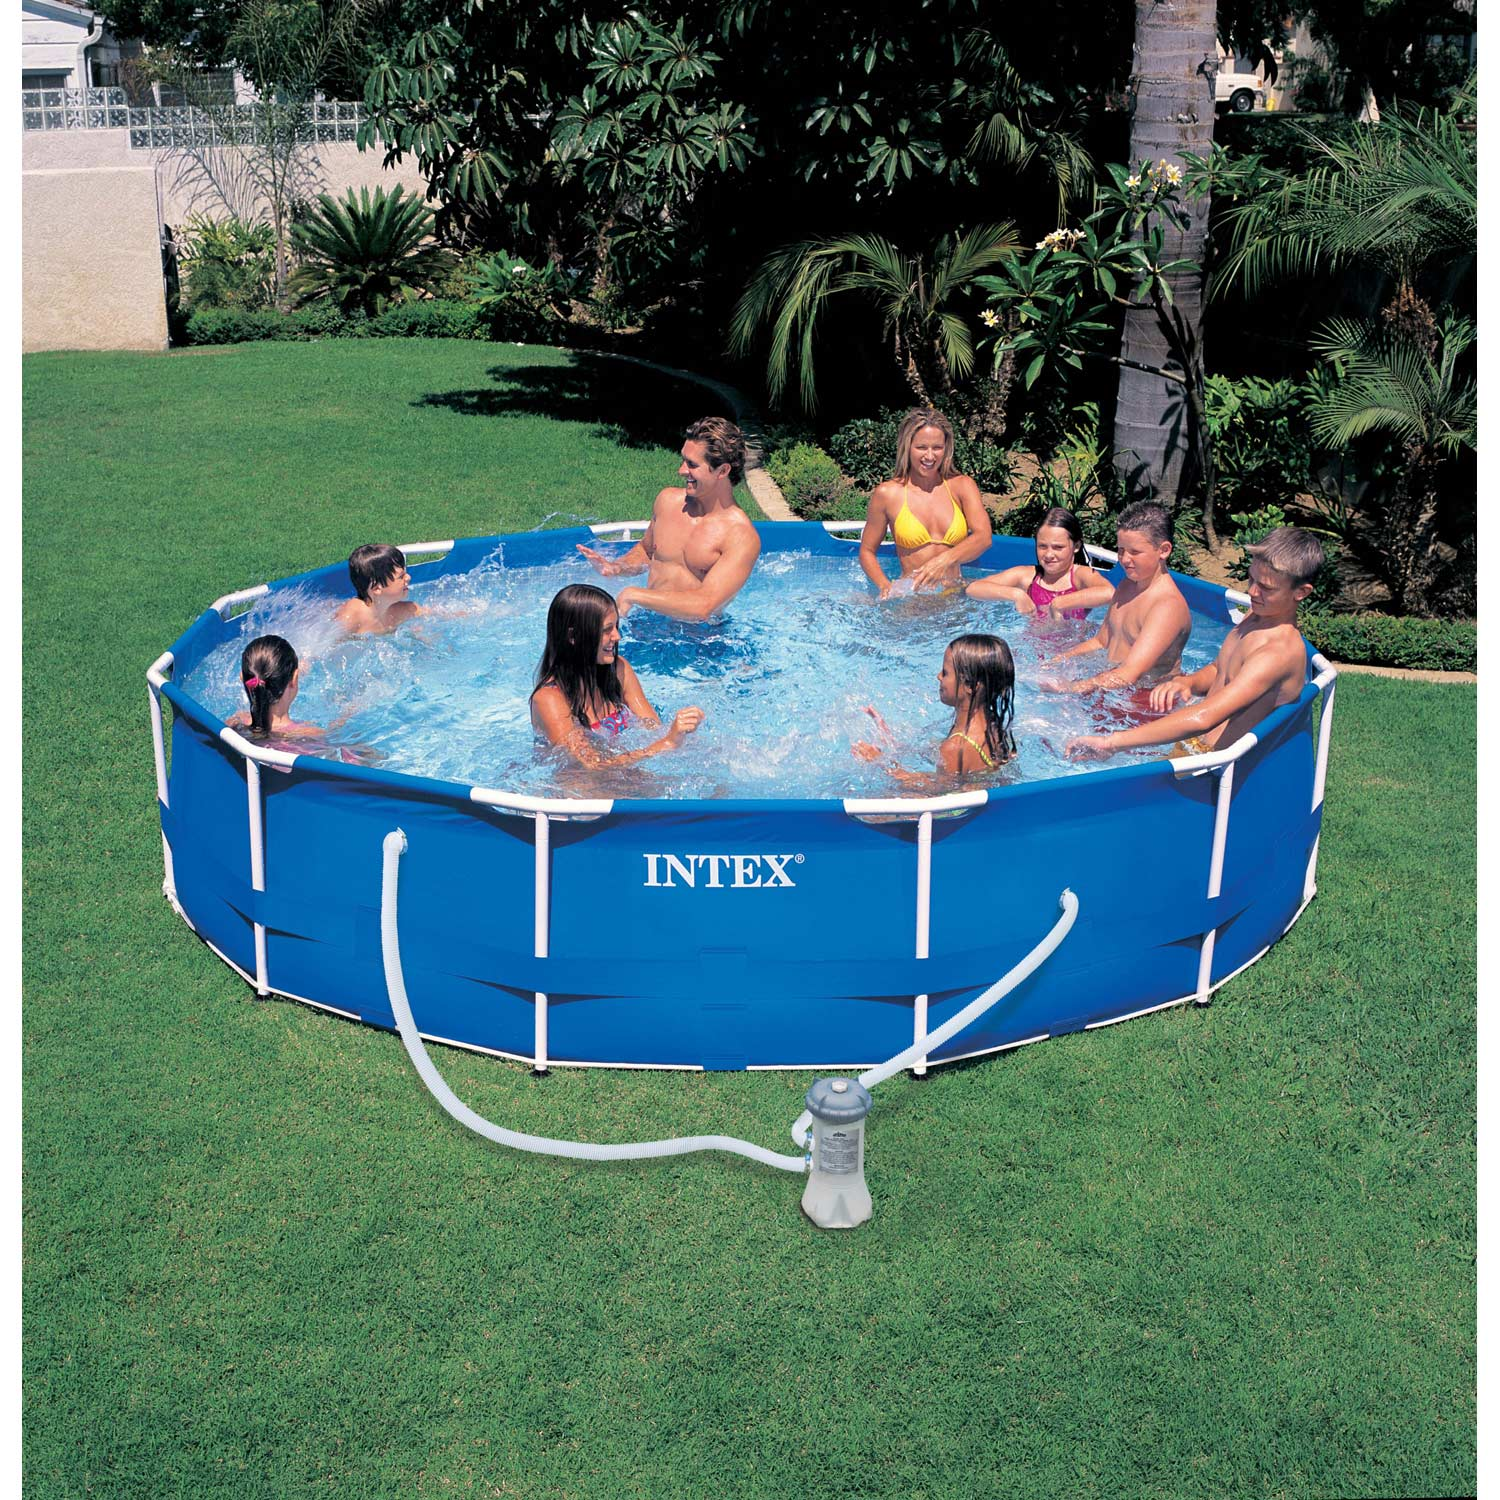 Piscine hors sol autoportante tubulaire metal frame intex for Piscine hors sol rectangulaire 4x3